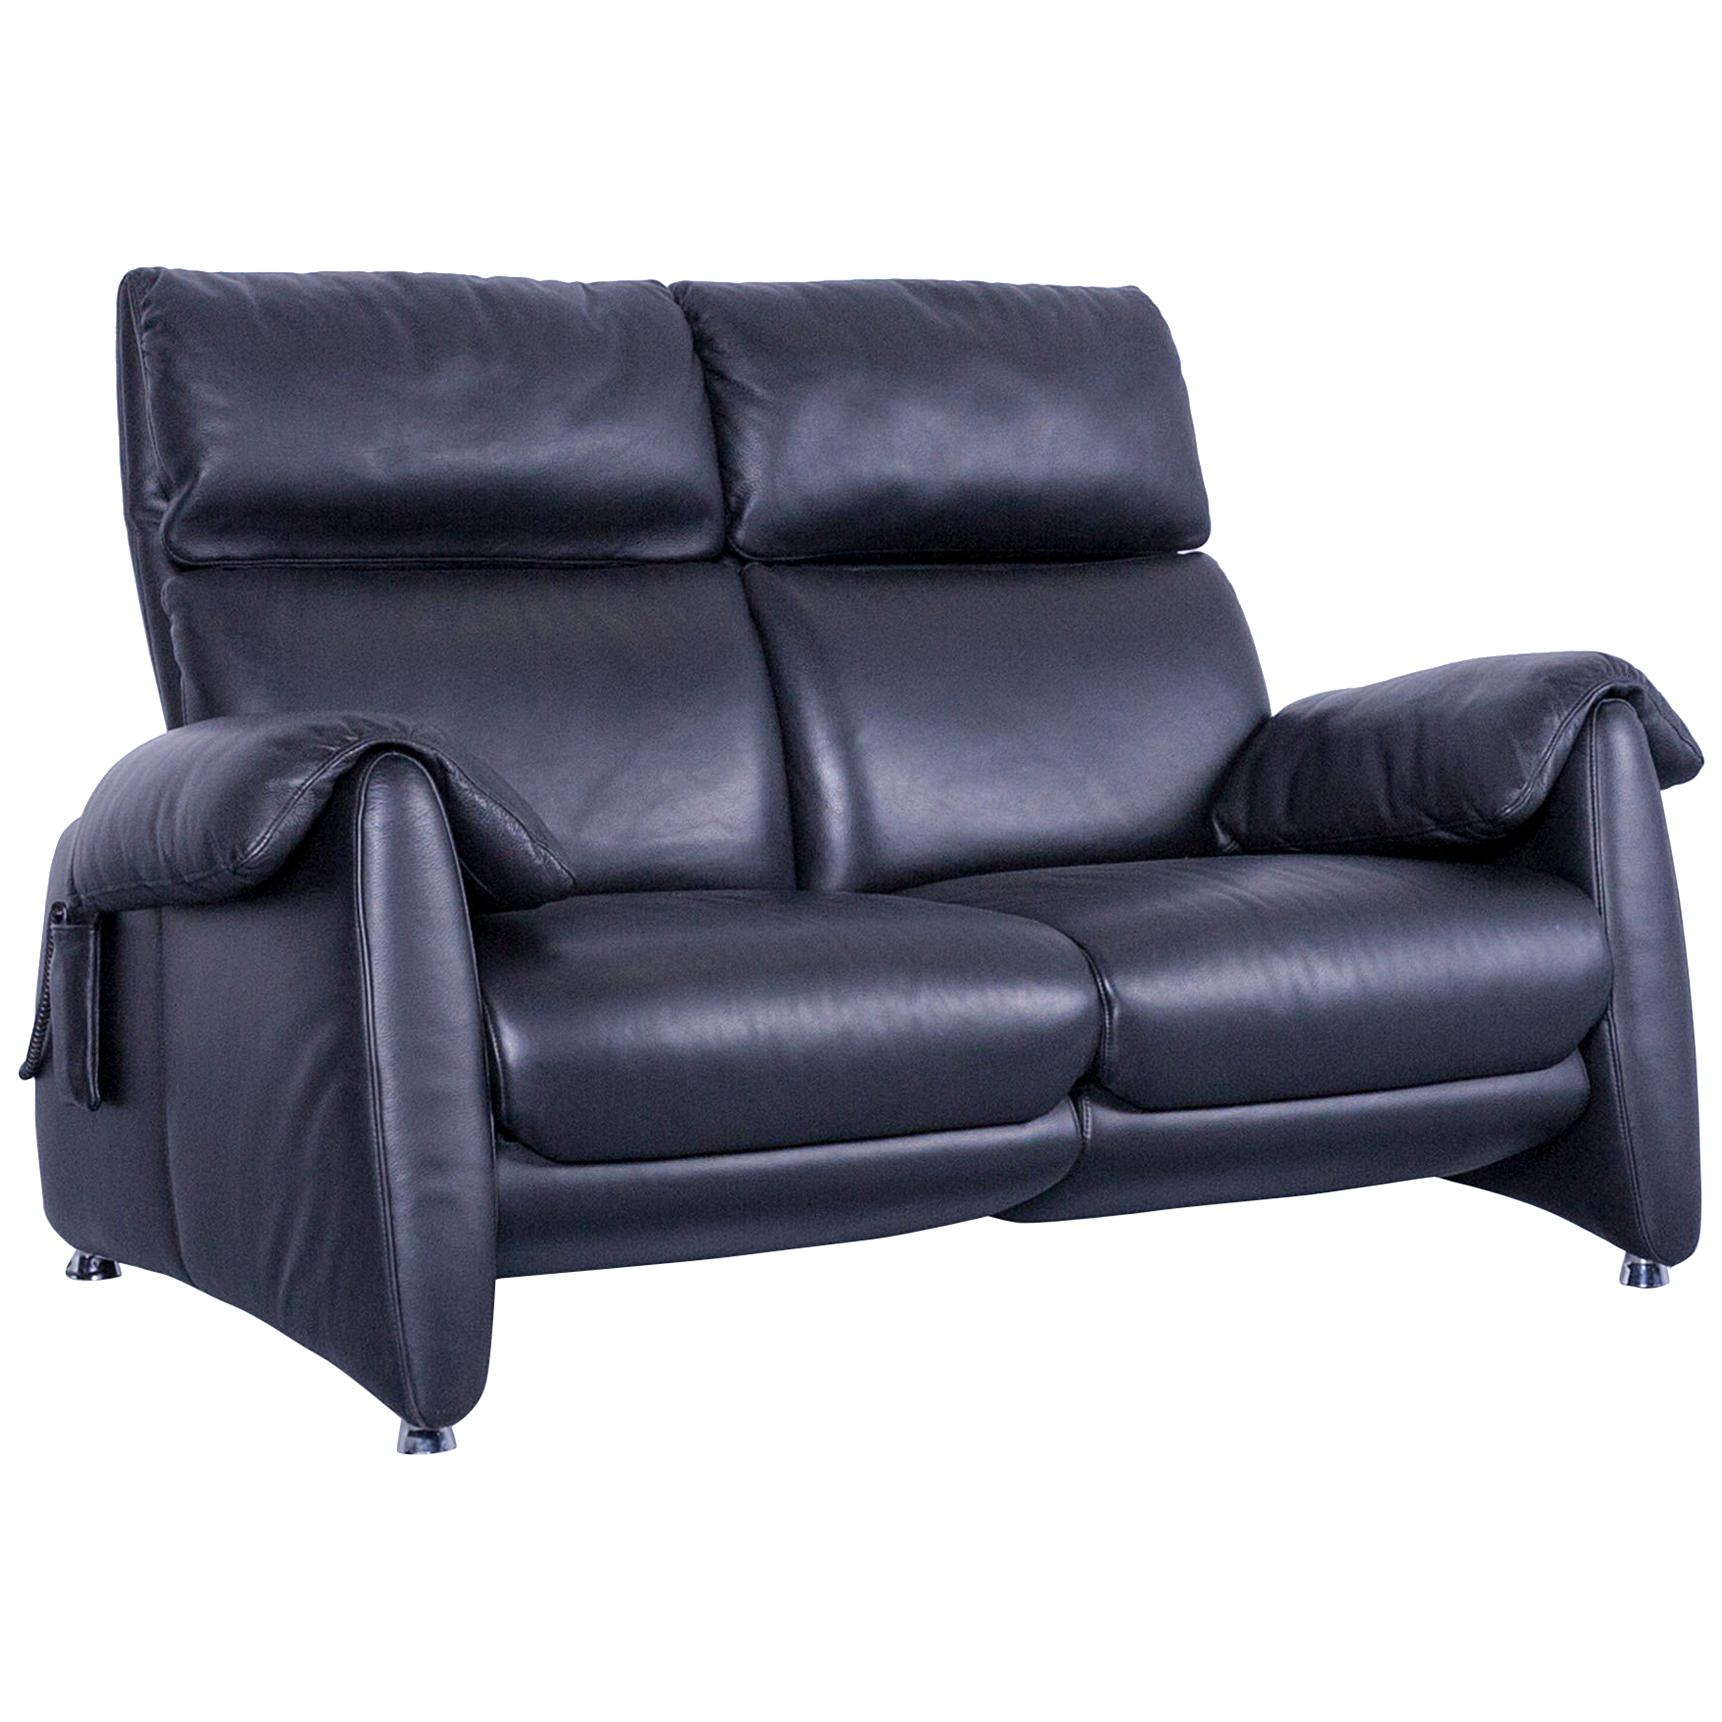 Delicieux Designer Sofa, Black Leather Two Seat Couch, Modern Electric Recliner For  Sale